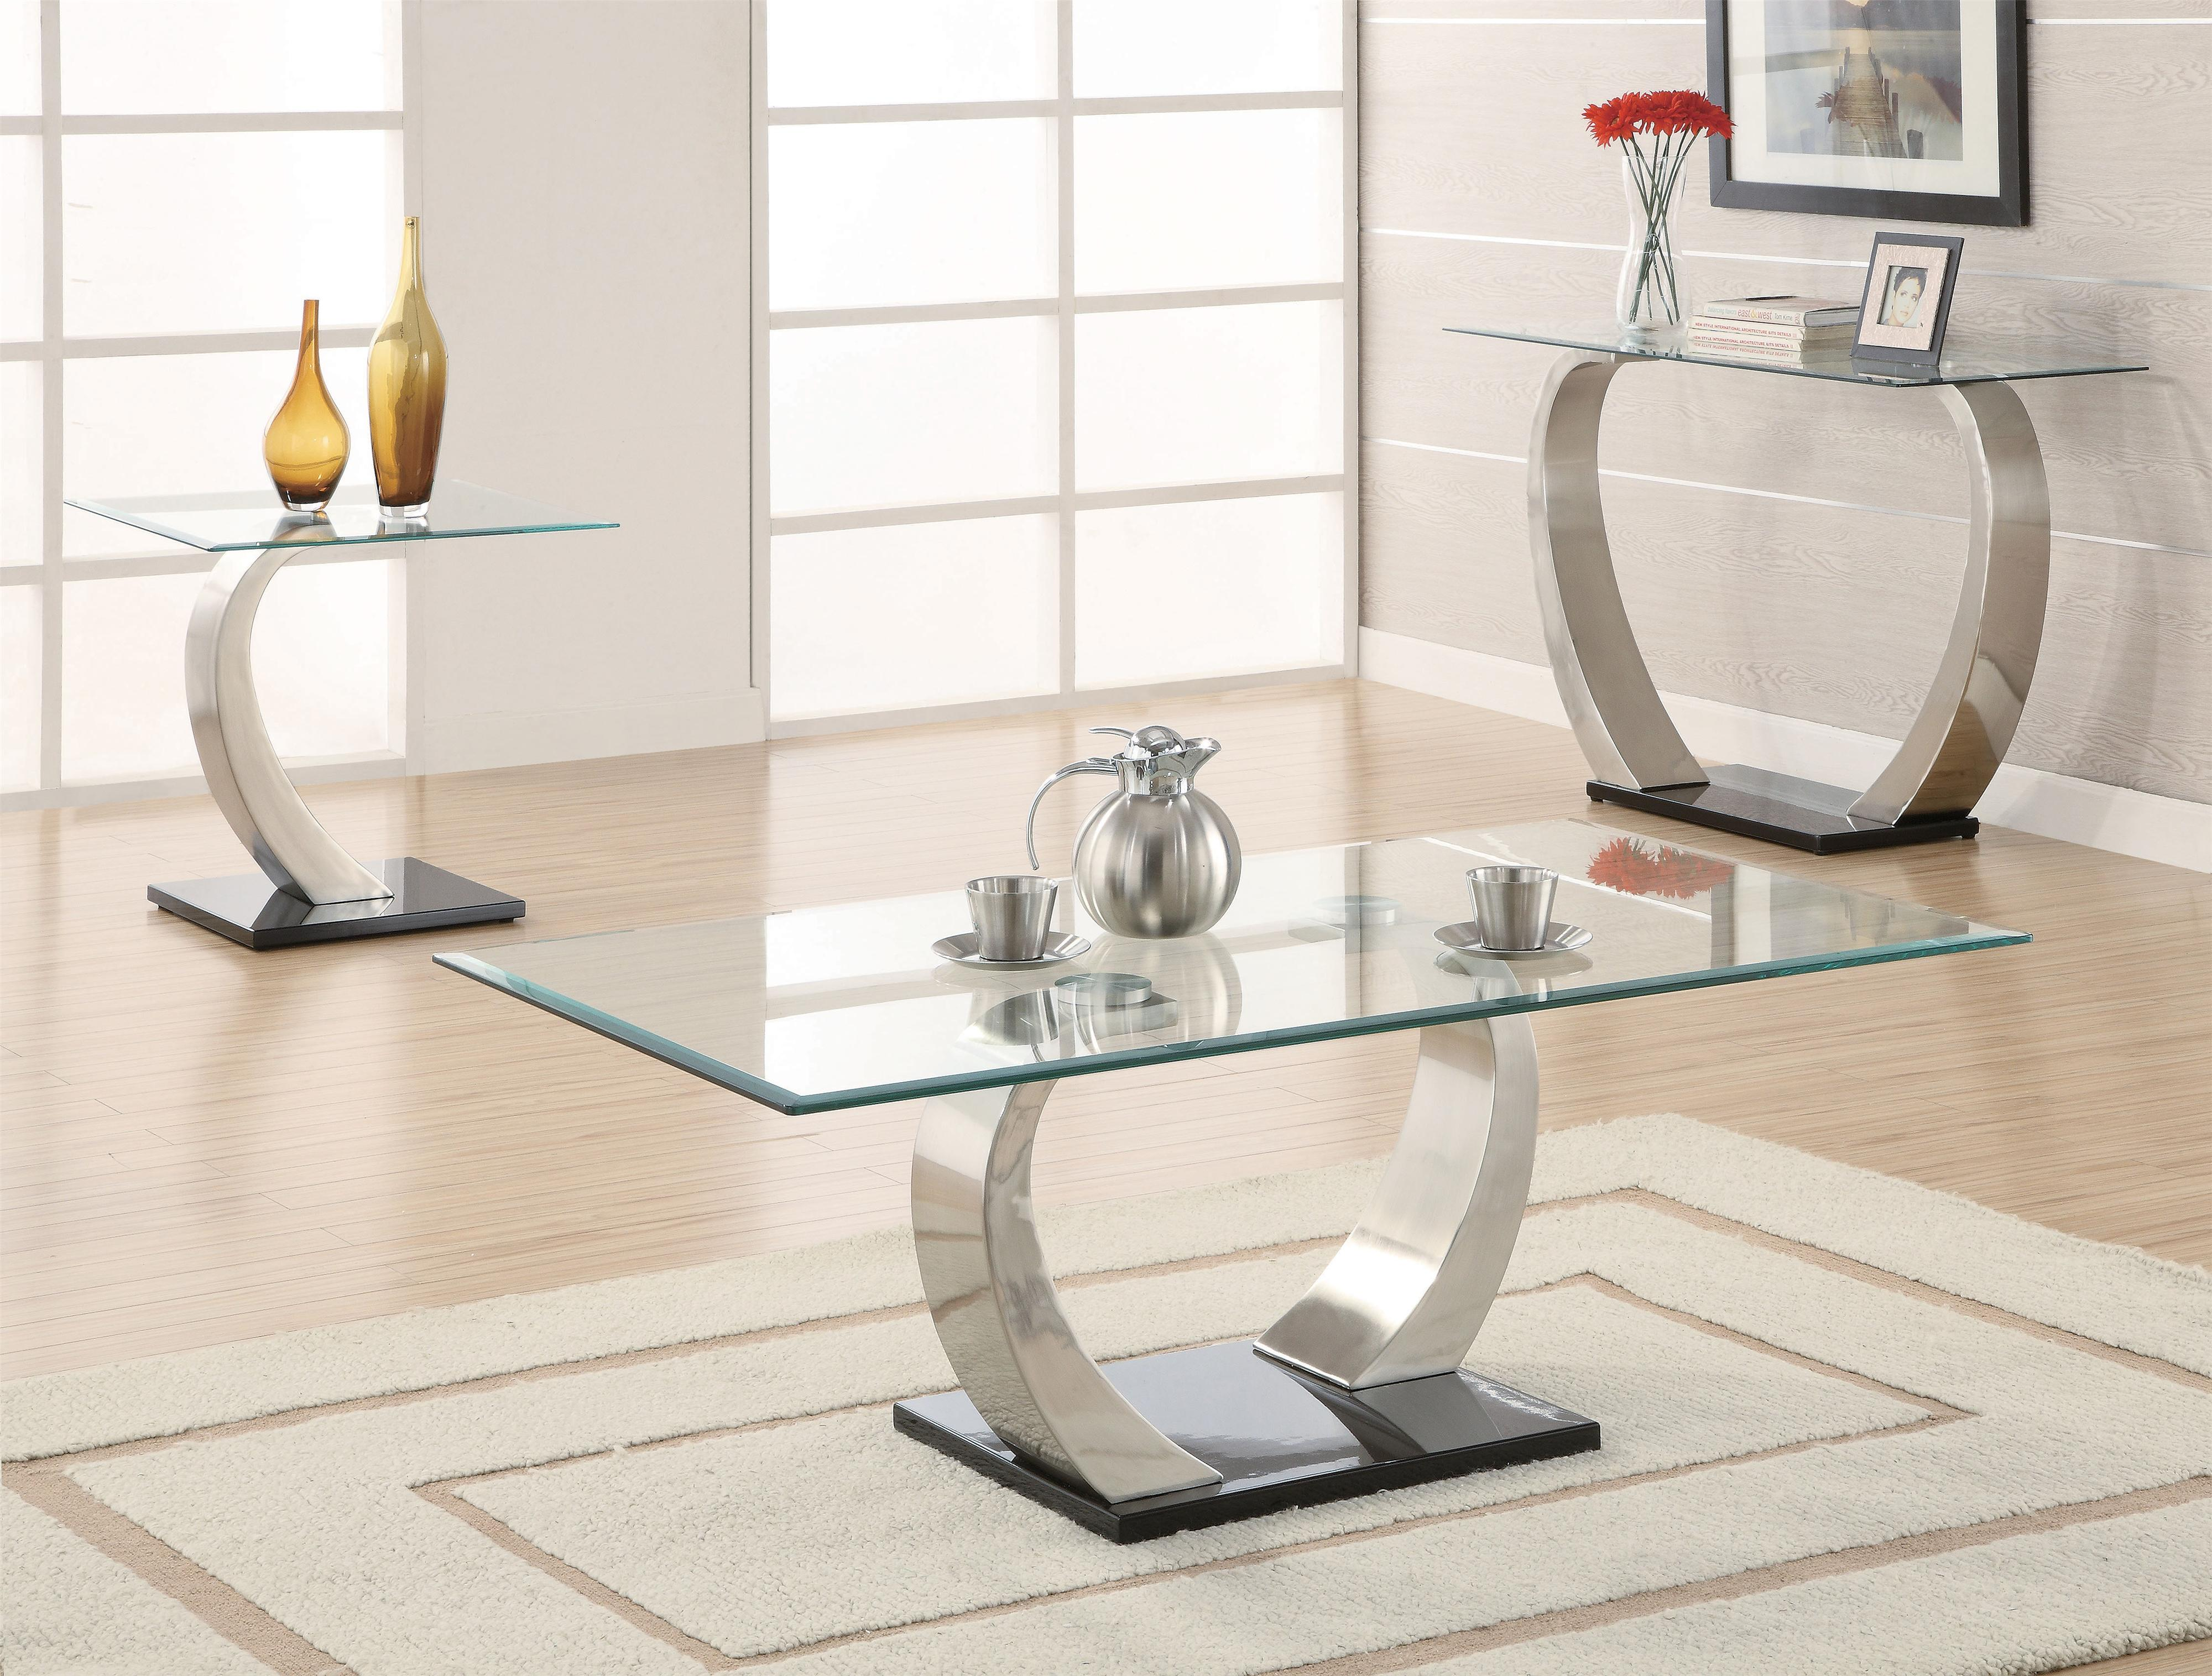 100 glass table and chairs for sale stunning dining room se